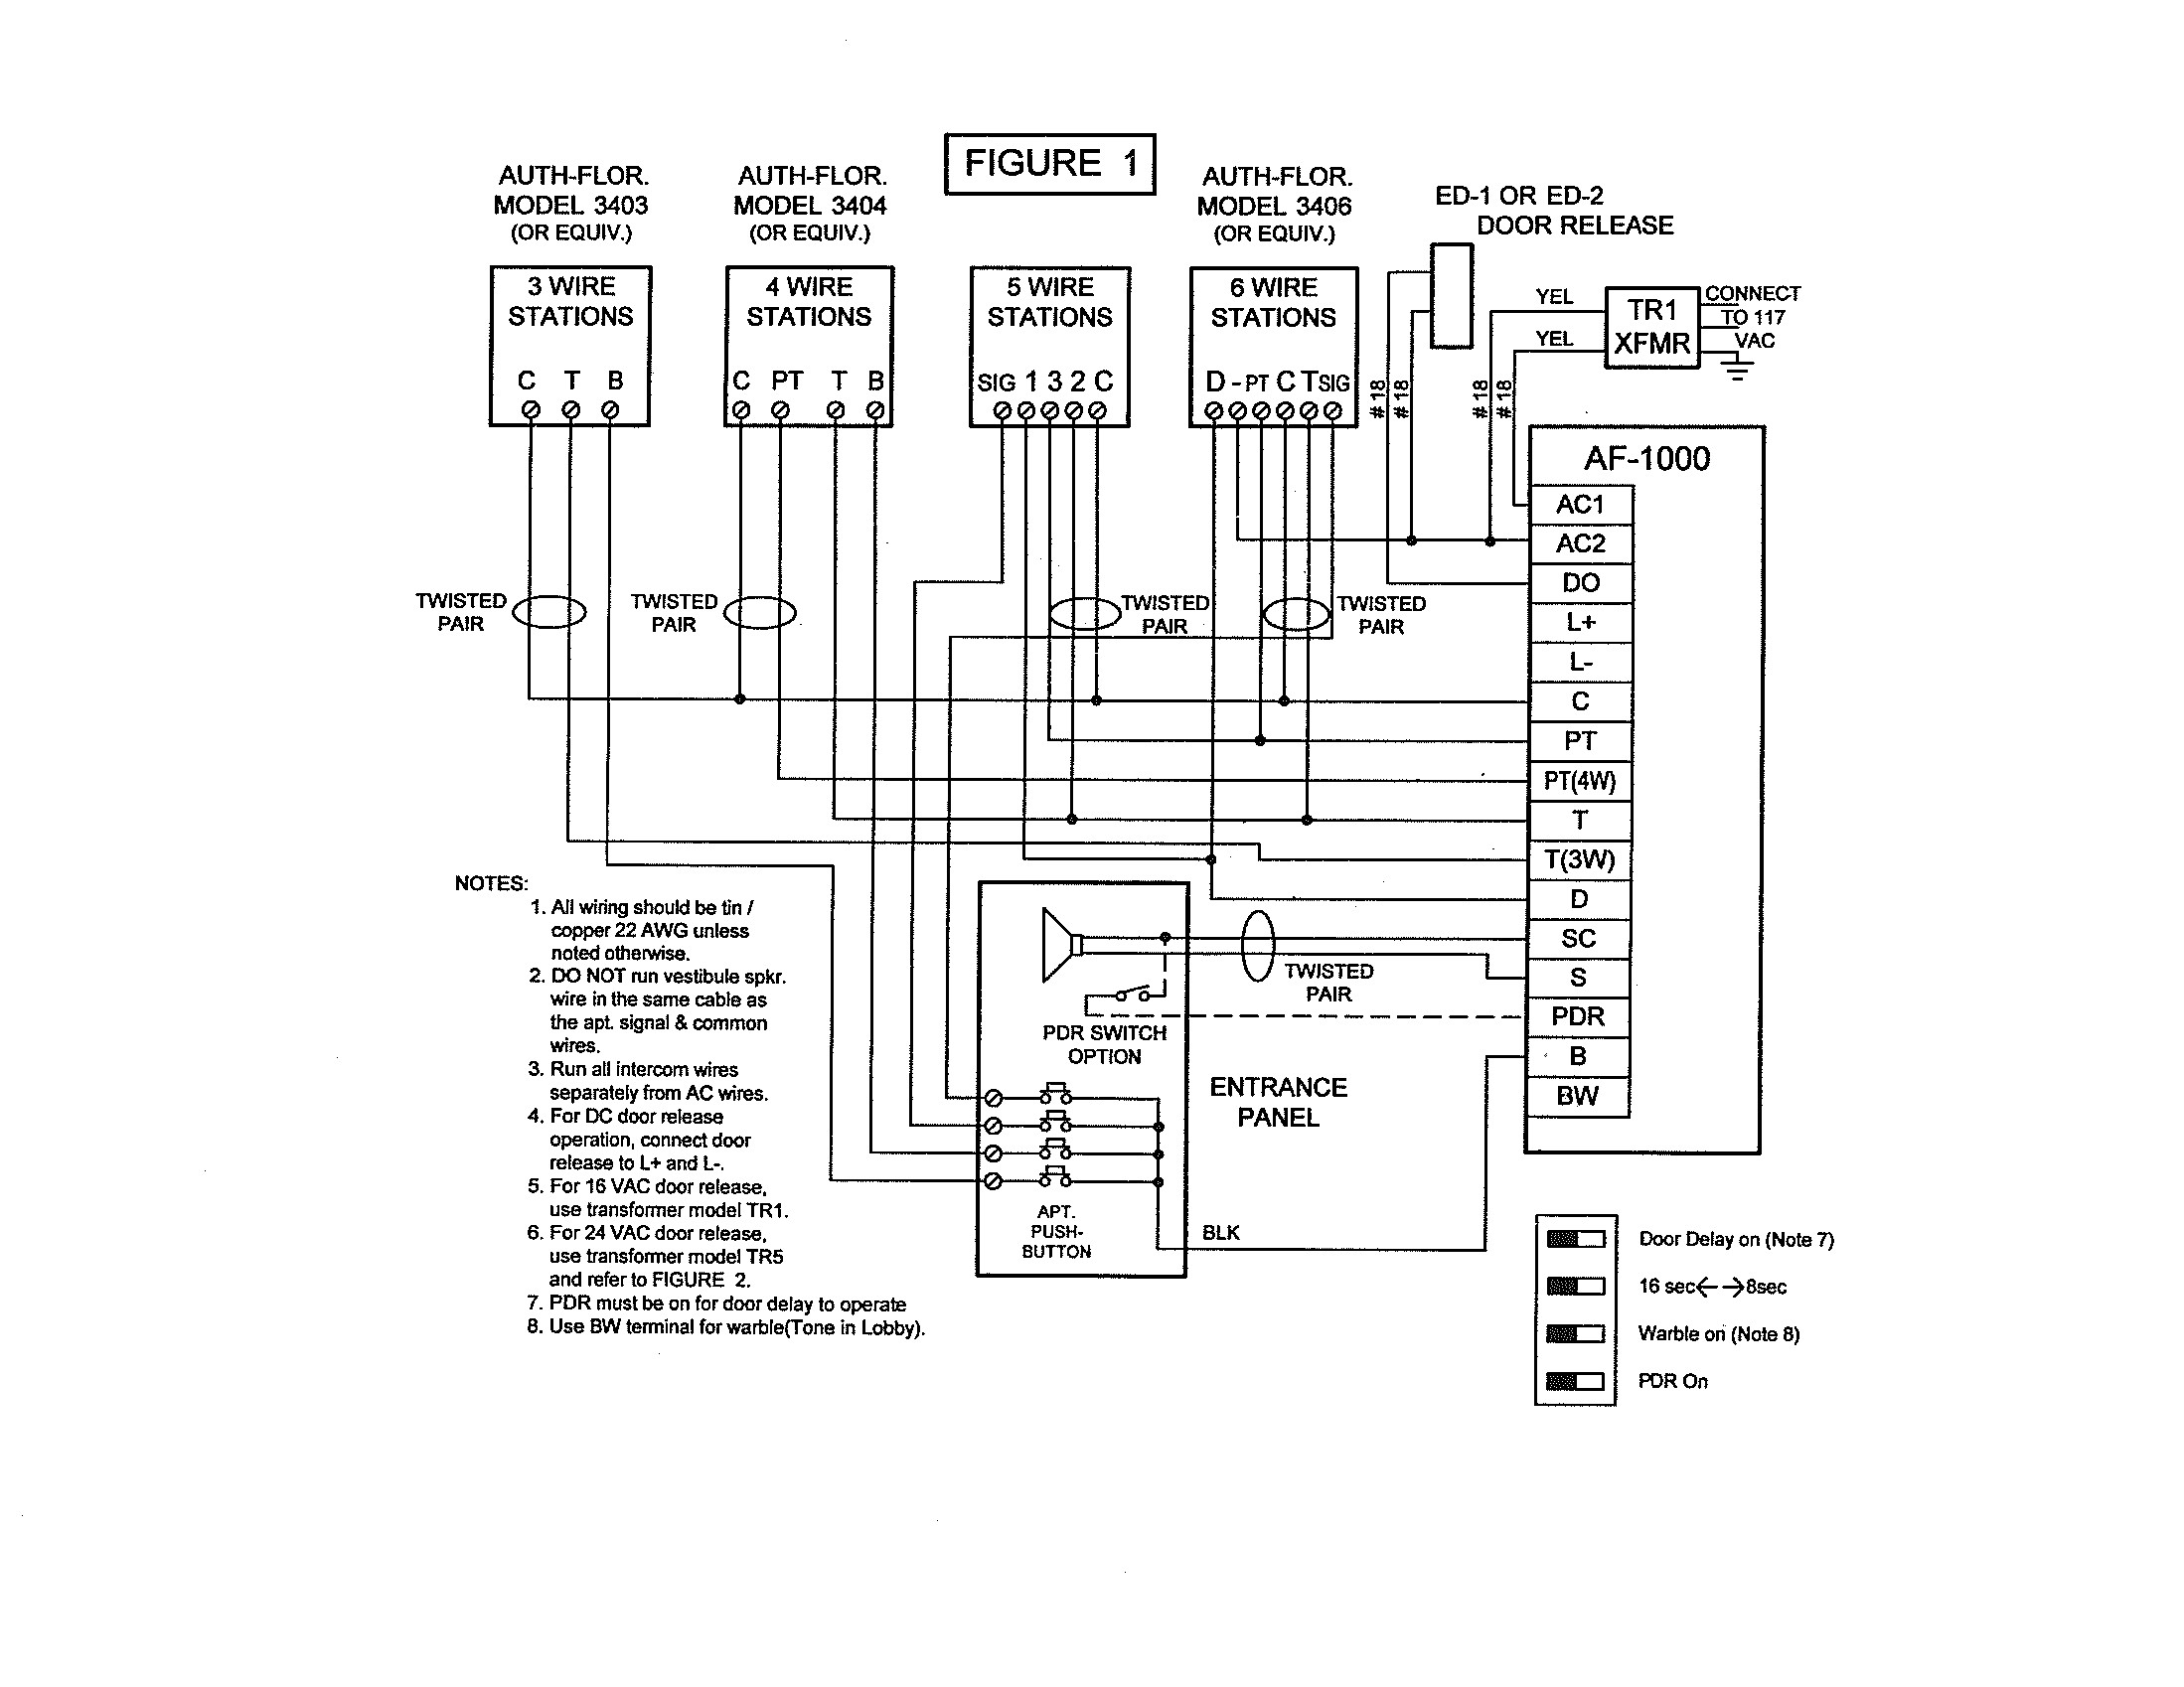 pacific electronics 3404 4 wire plastic intercom stationDoor In Contact Series Wire Diagram #14